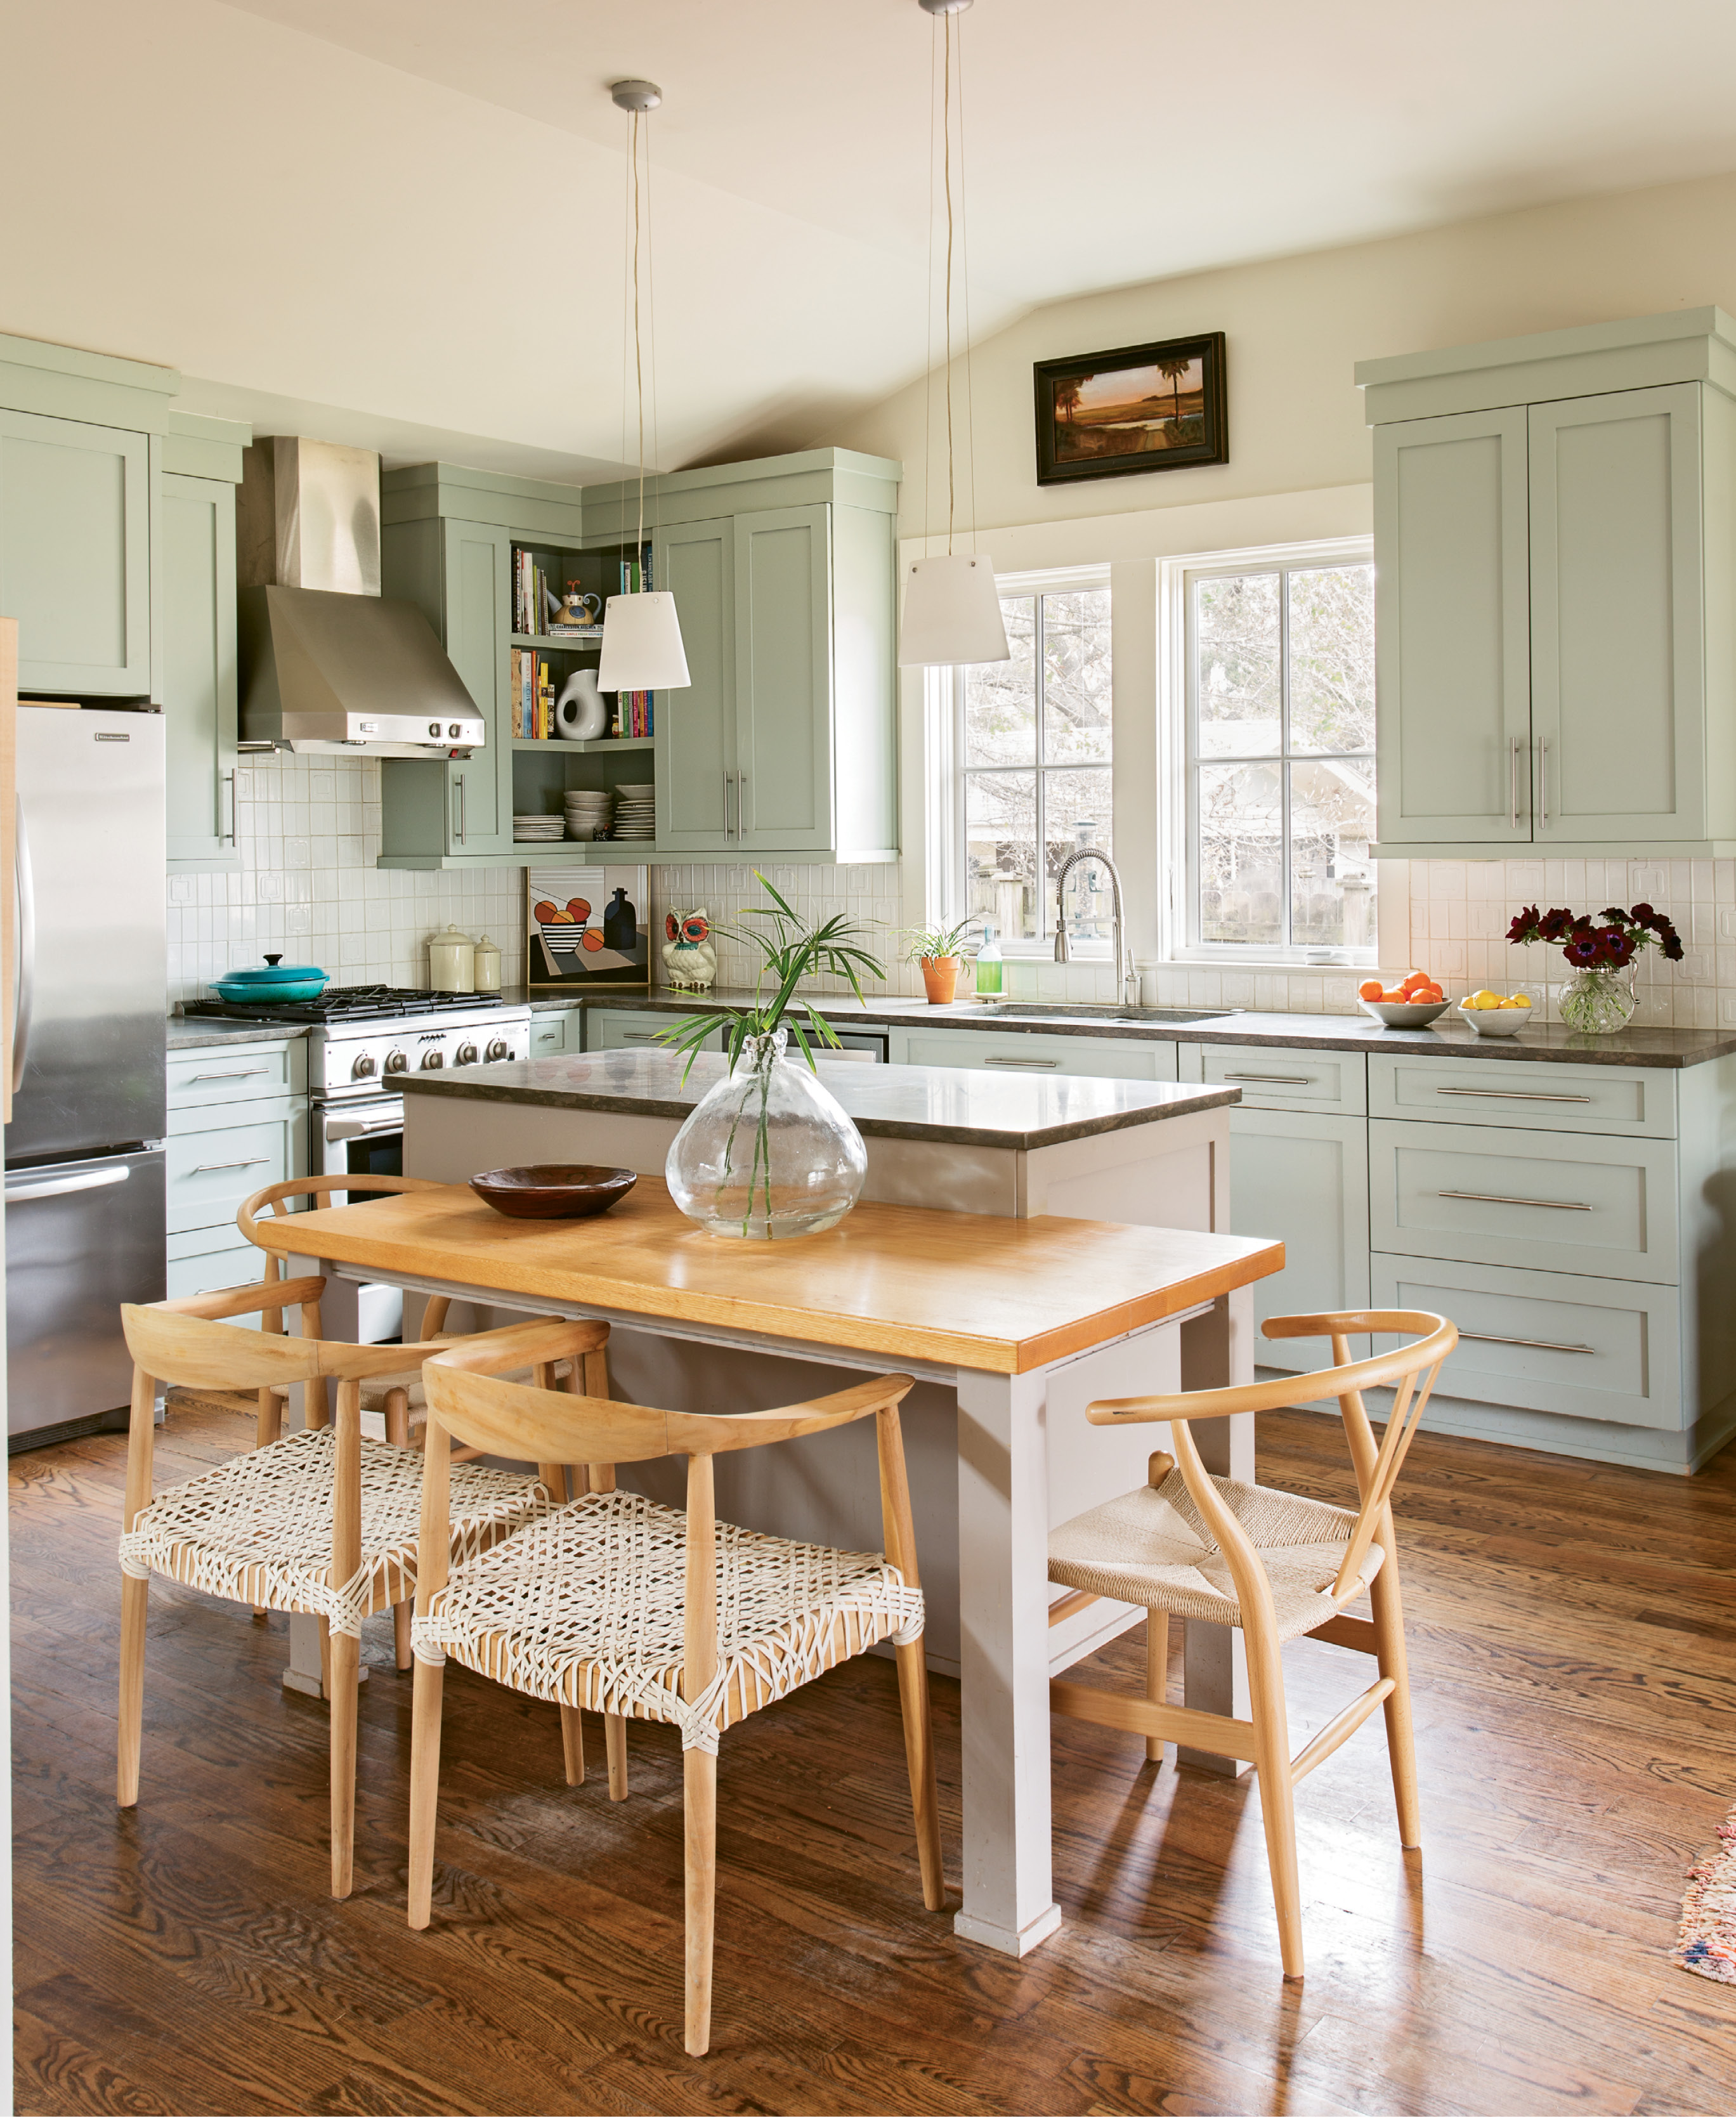 Clean Eating: In the kitchen, area carpenter Robert Buxton built the custom asymmetrical table, which adds a contemporary design element as well as an informal space for the family to gather for meals.